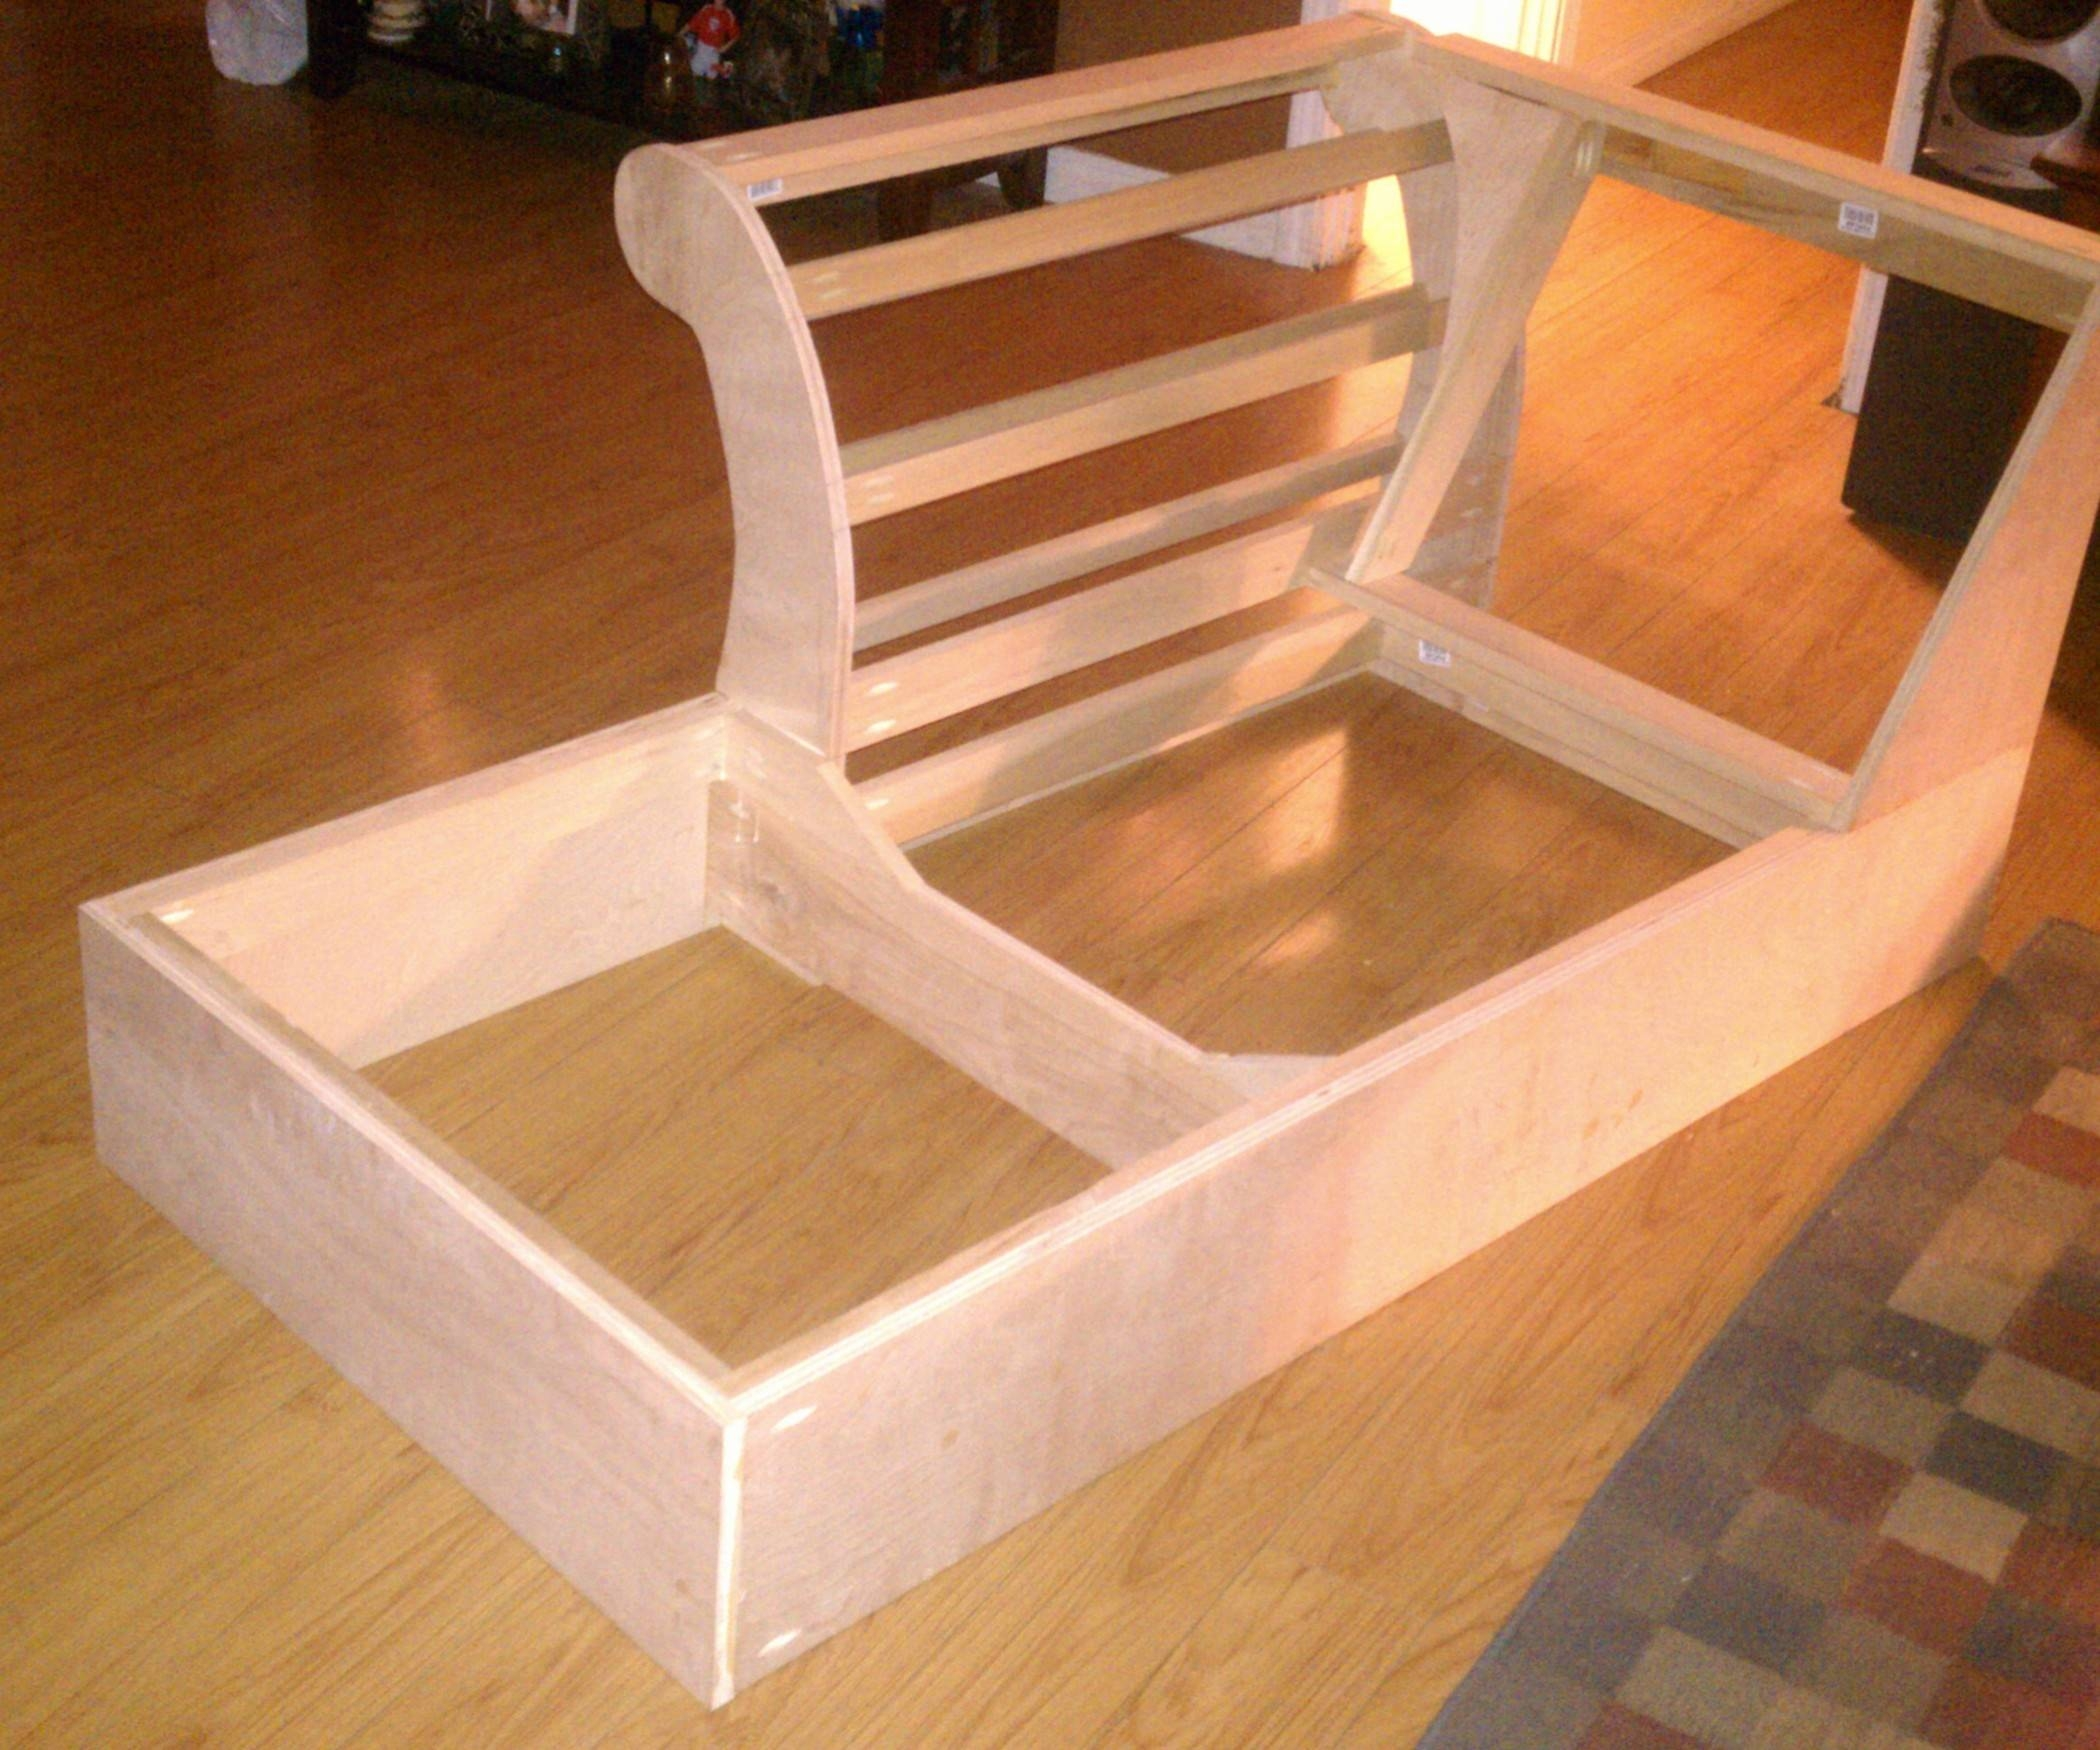 Build A Chaise Frame From Scratch: 5 Steps (With Pictures) with regard to Diy Sectional Sofa Frame Plans (Image 9 of 30)